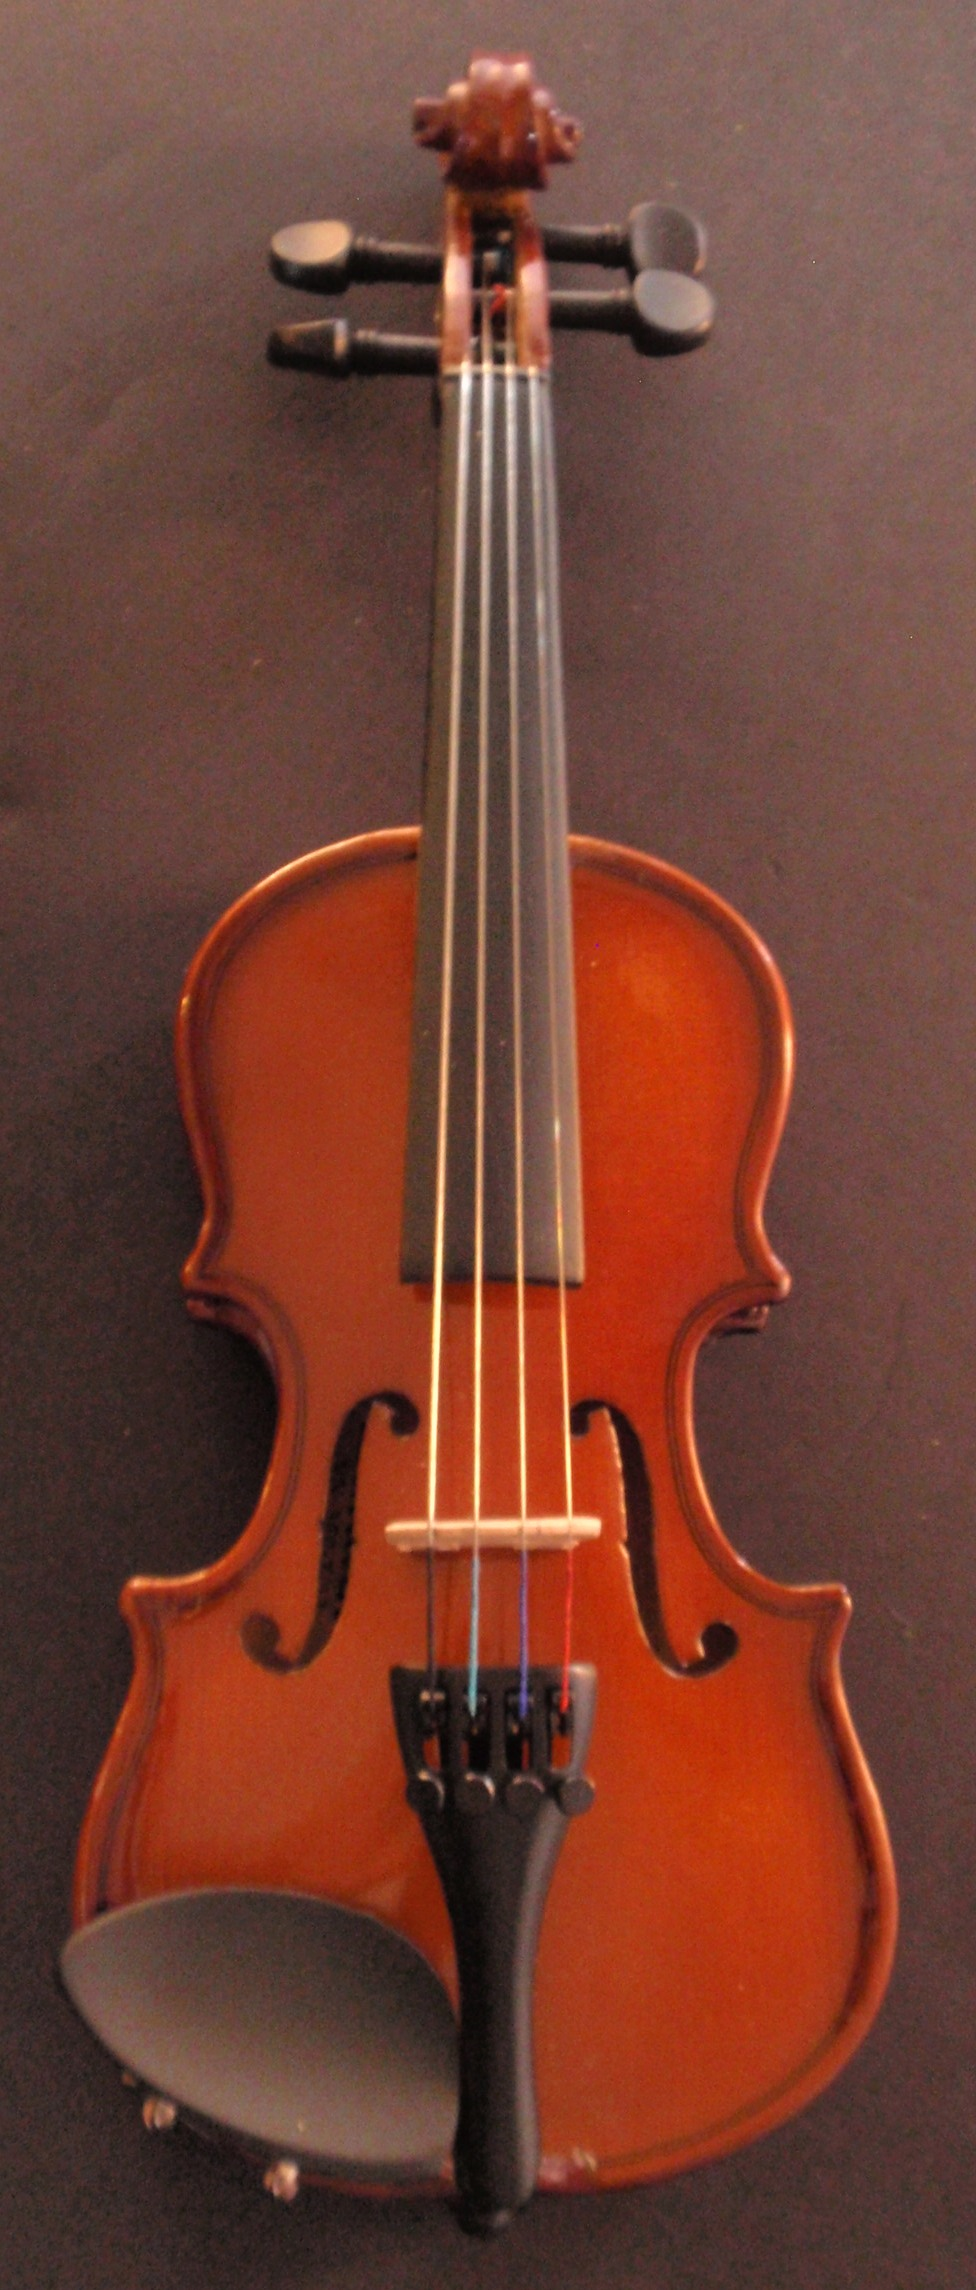 Campus Violin Frontview